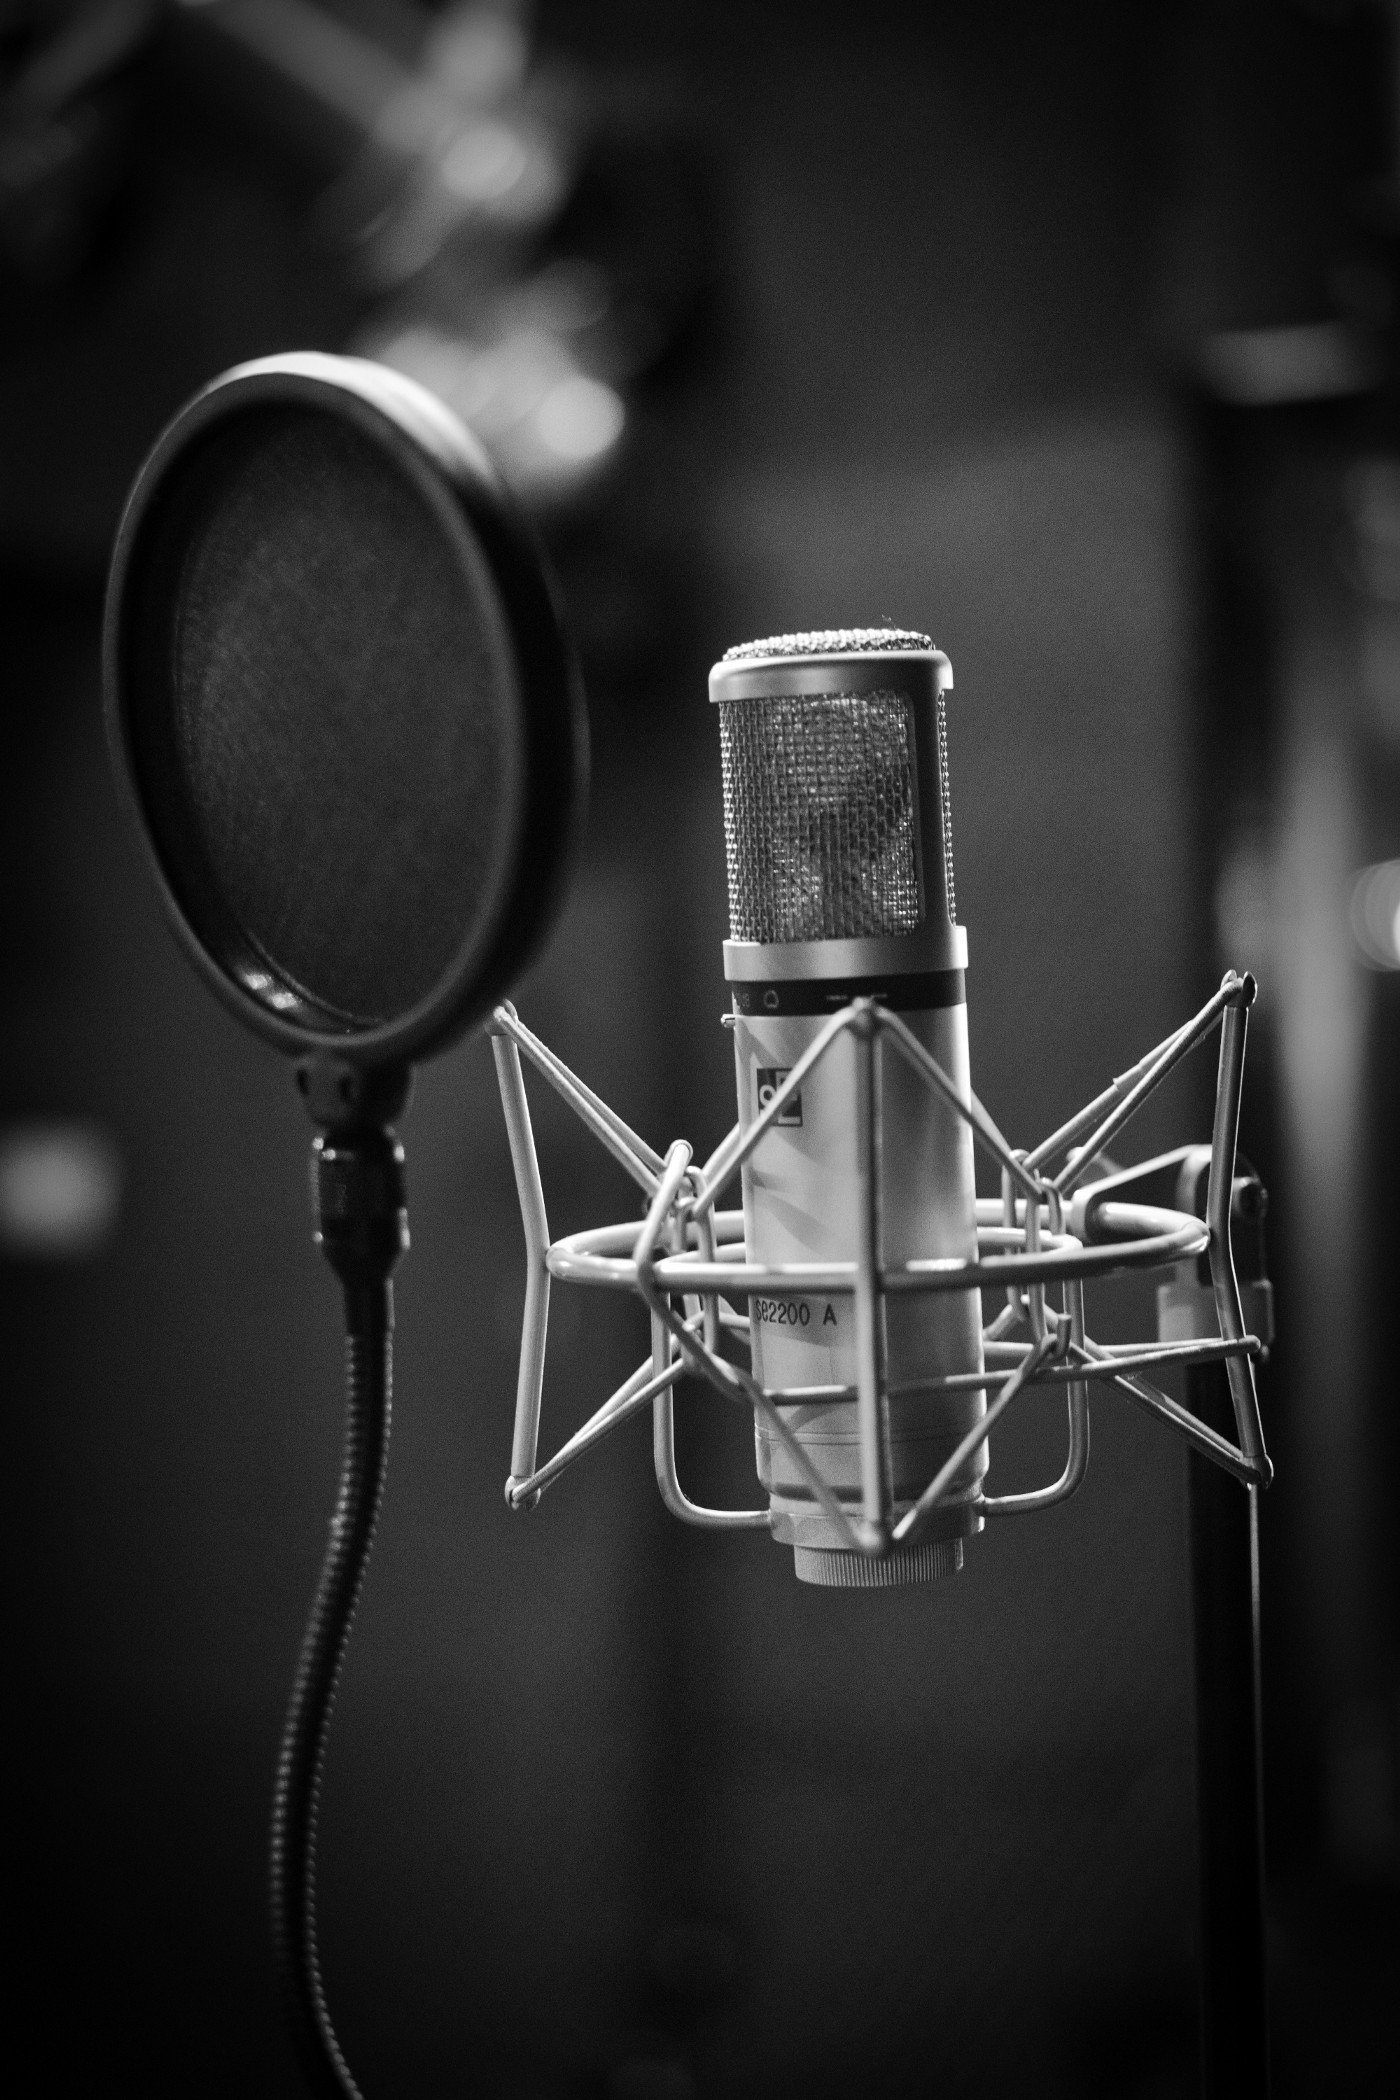 A black and white photograph of a microphone